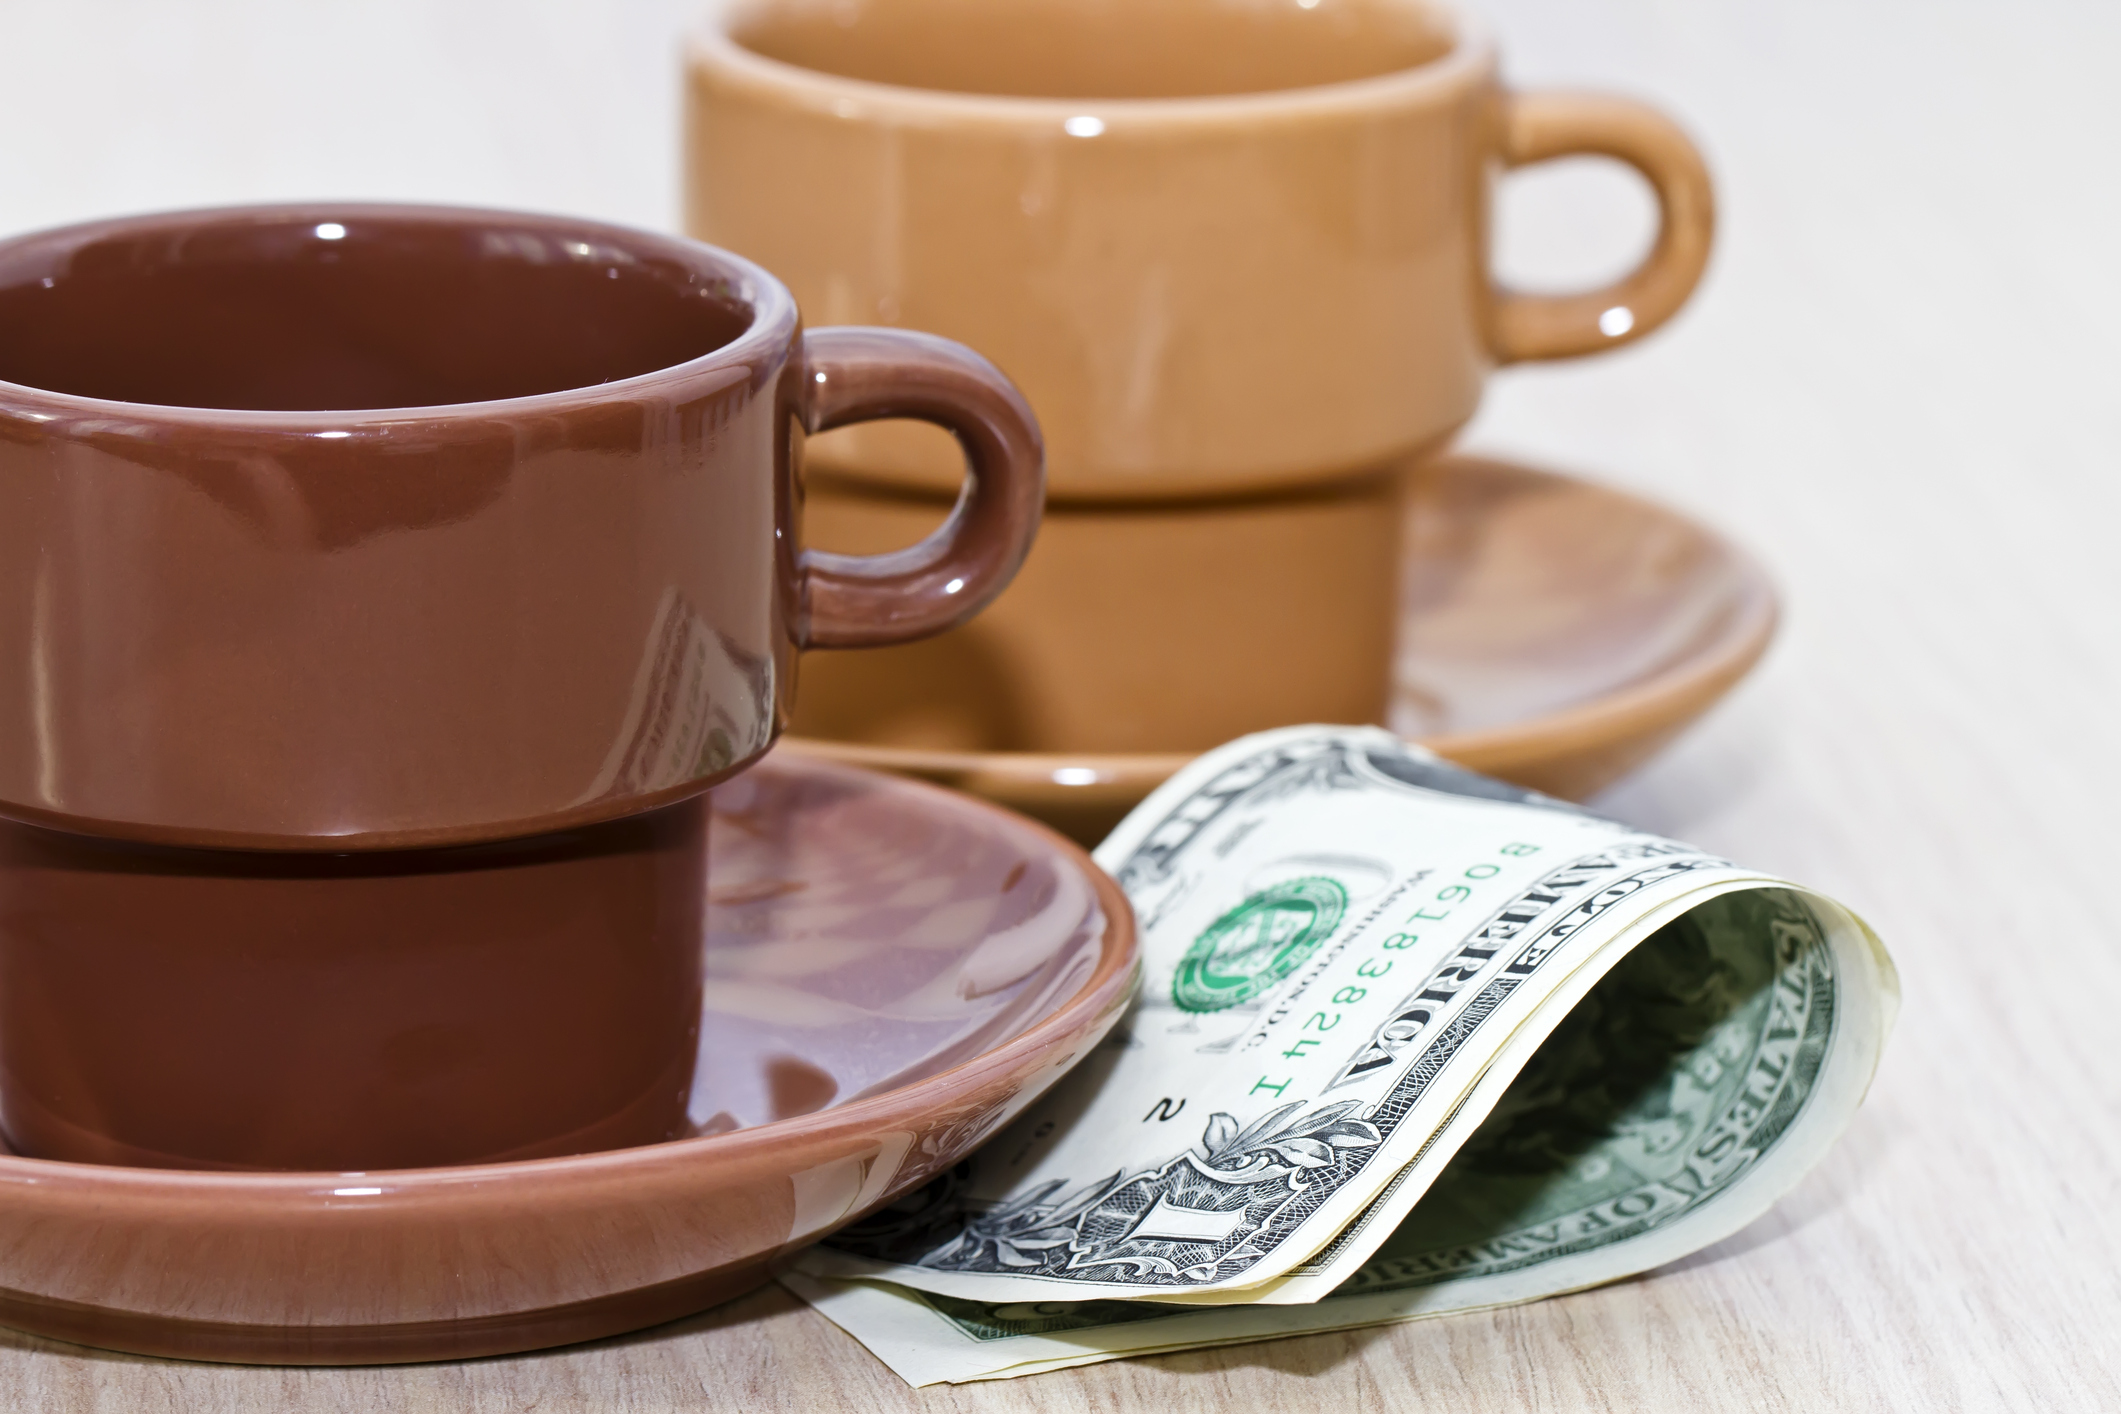 Republicans and Baby Boomers are among the best tippers, study shows